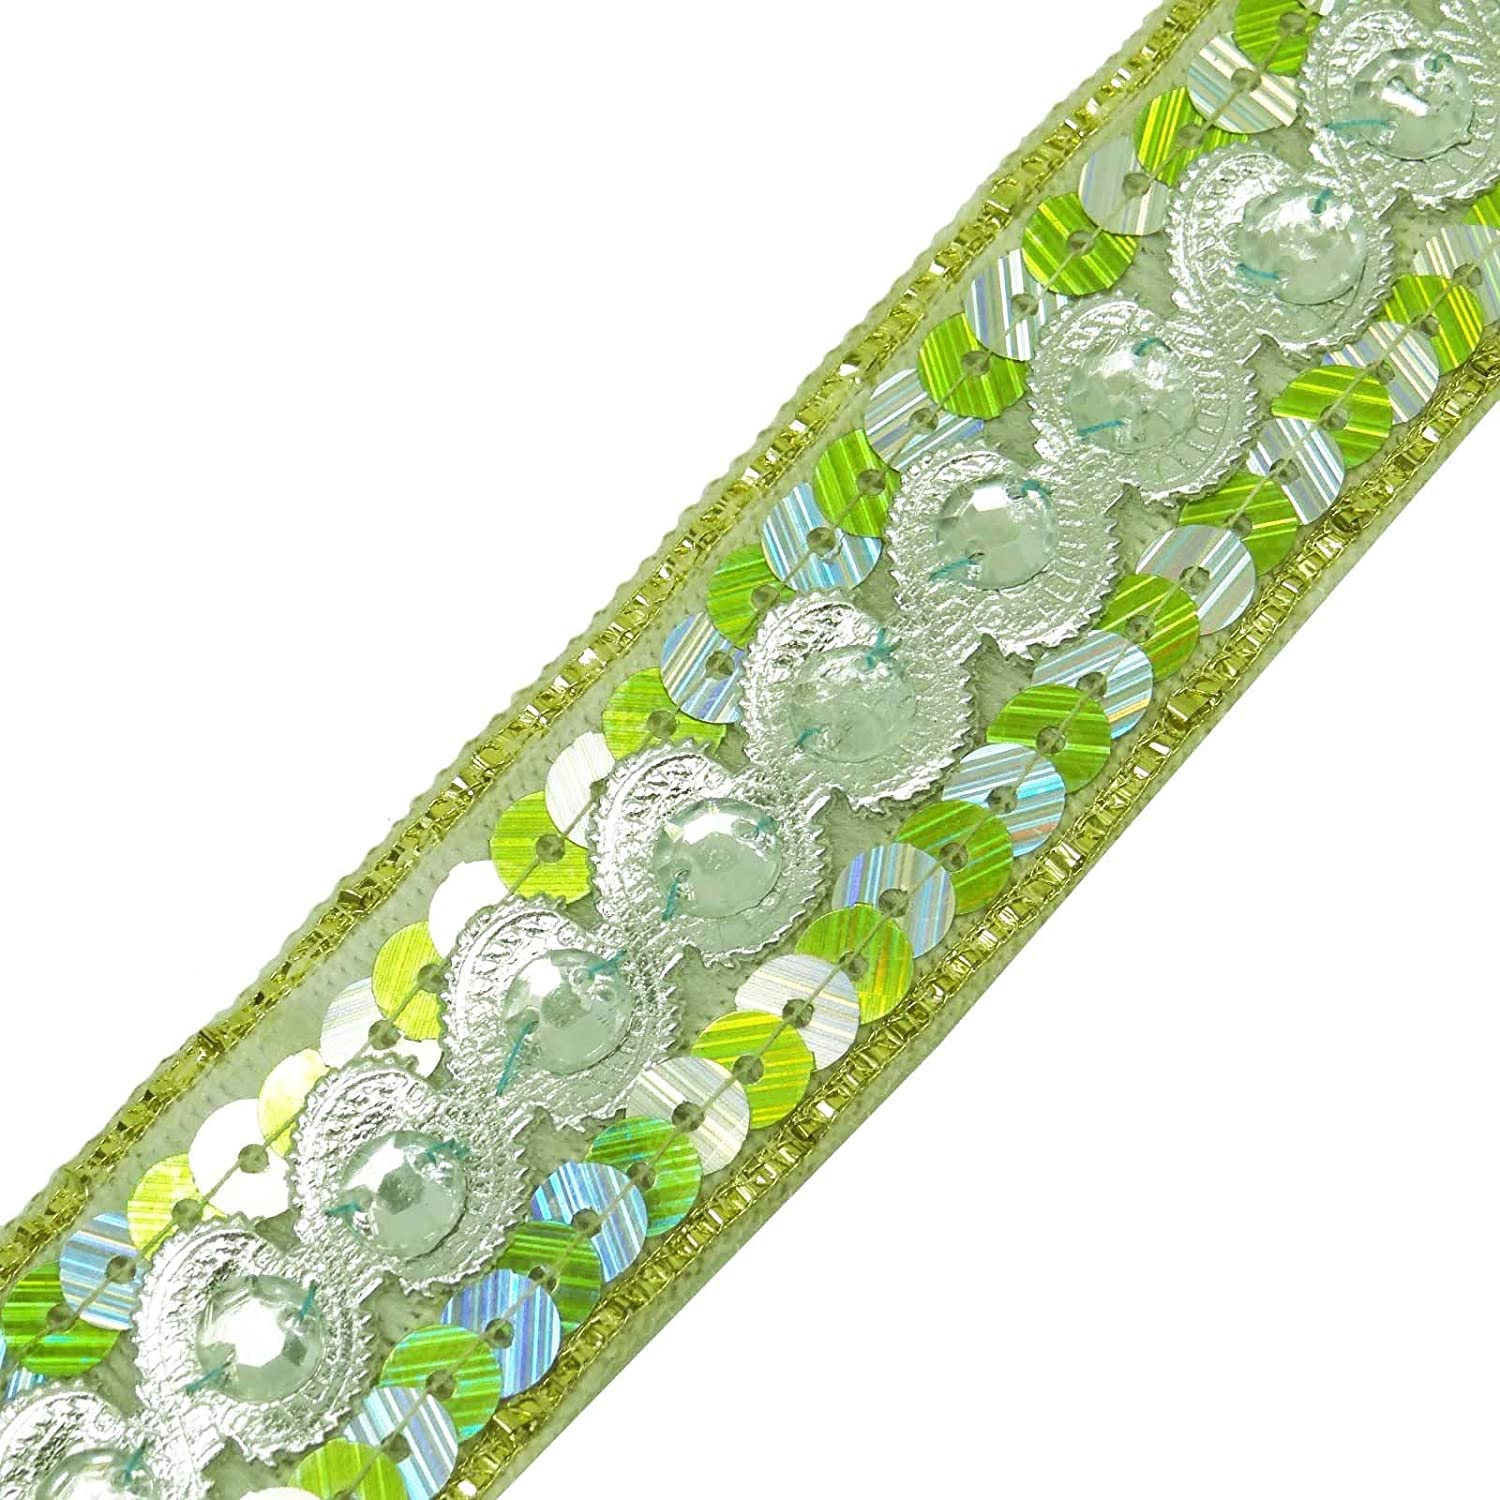 Decorative Beaded Trim Sari Border Indian 3.04 Cm Wide Sewing Material By The Yard Knitwit